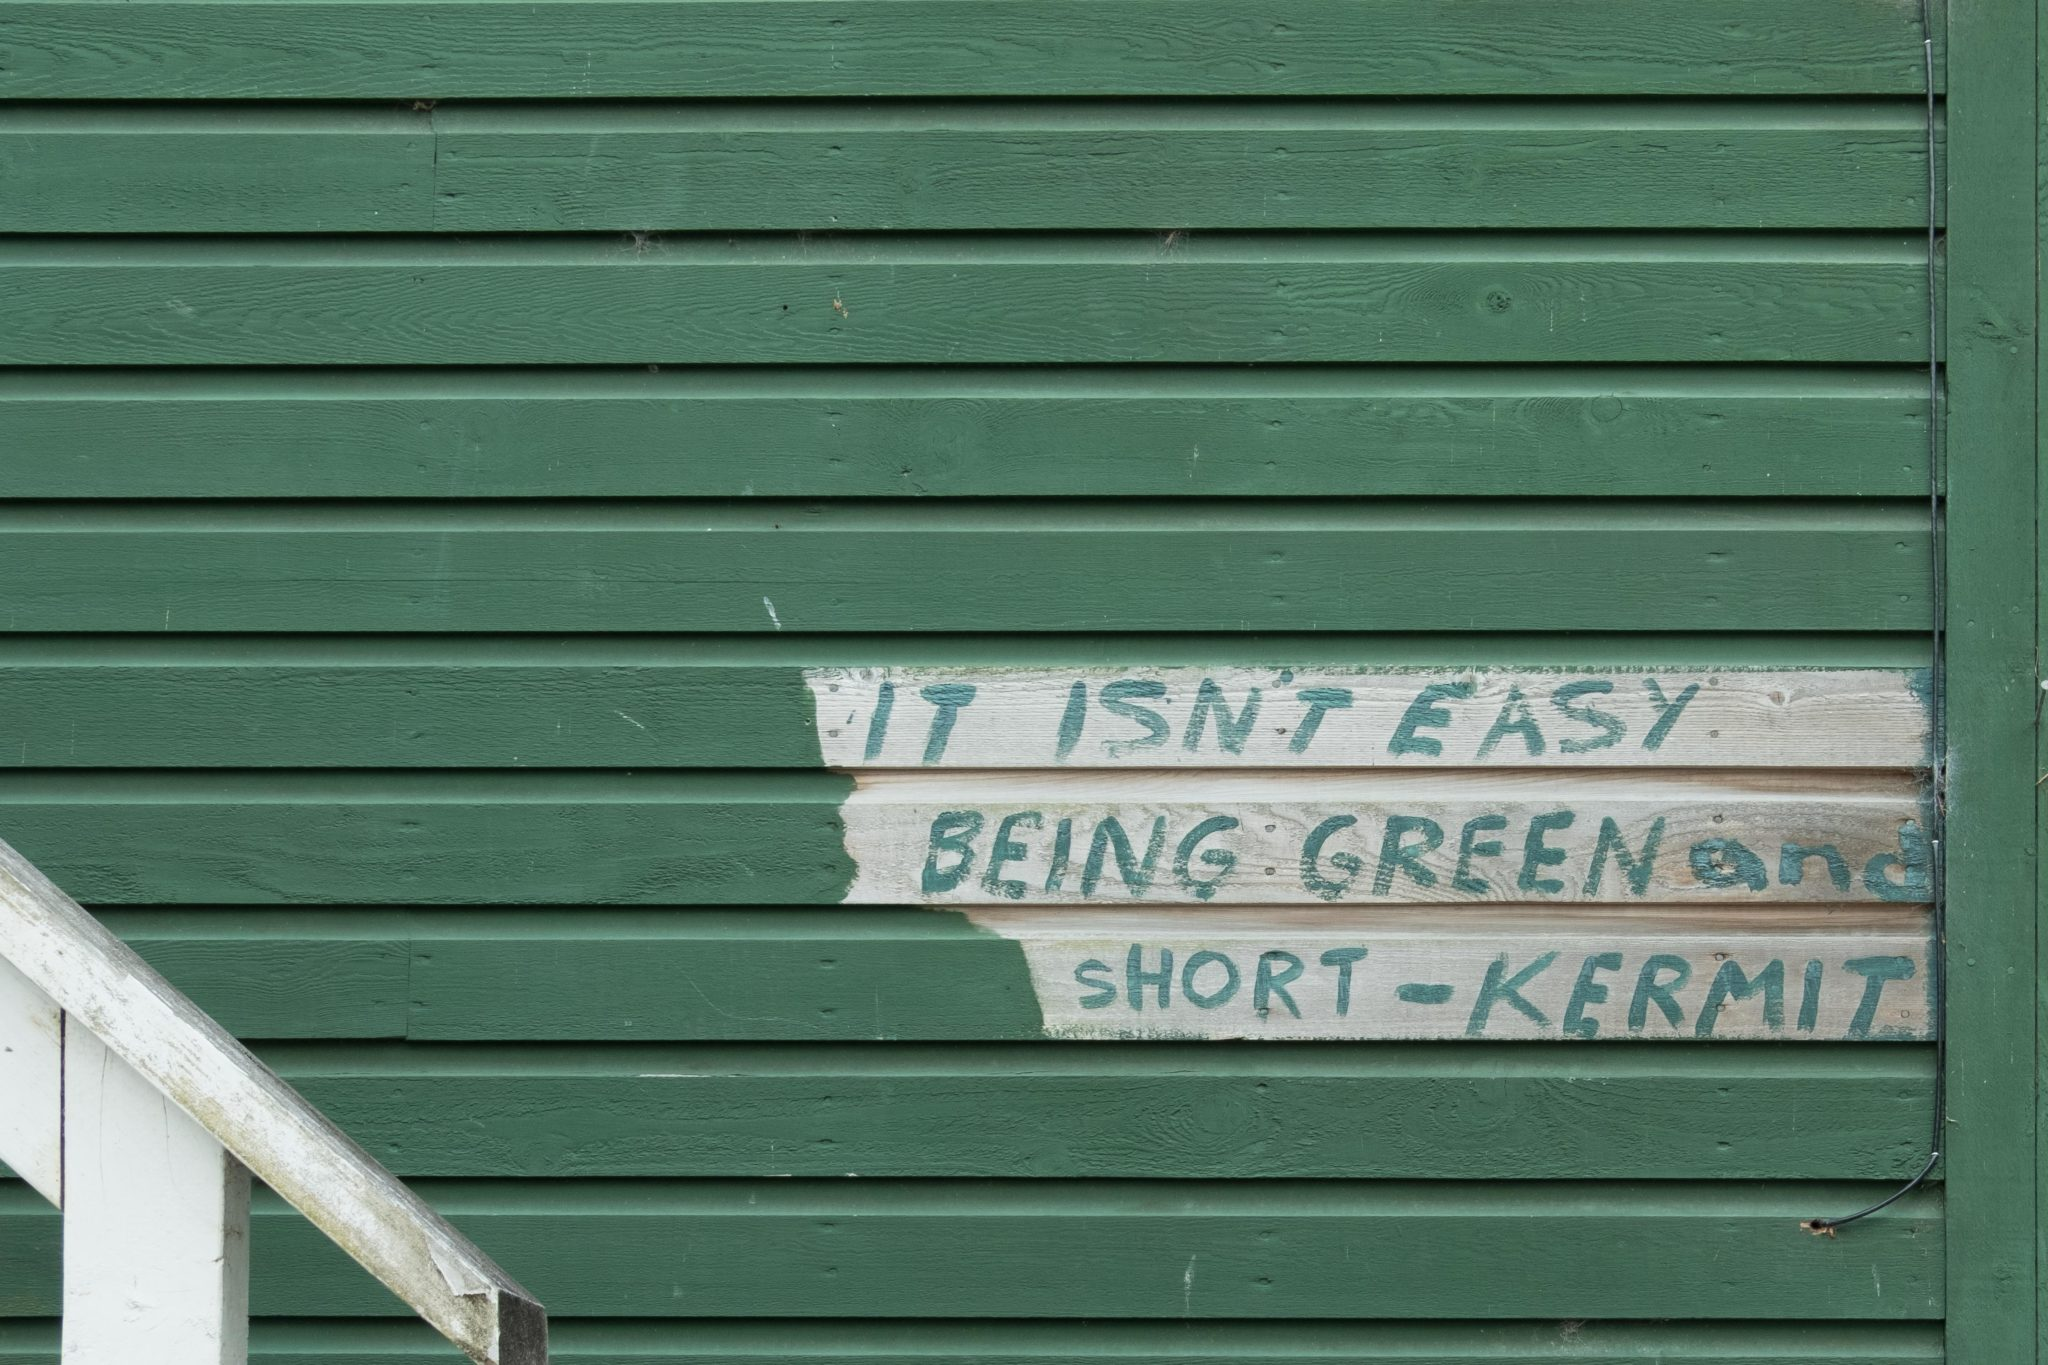 It isn't easy being green and short